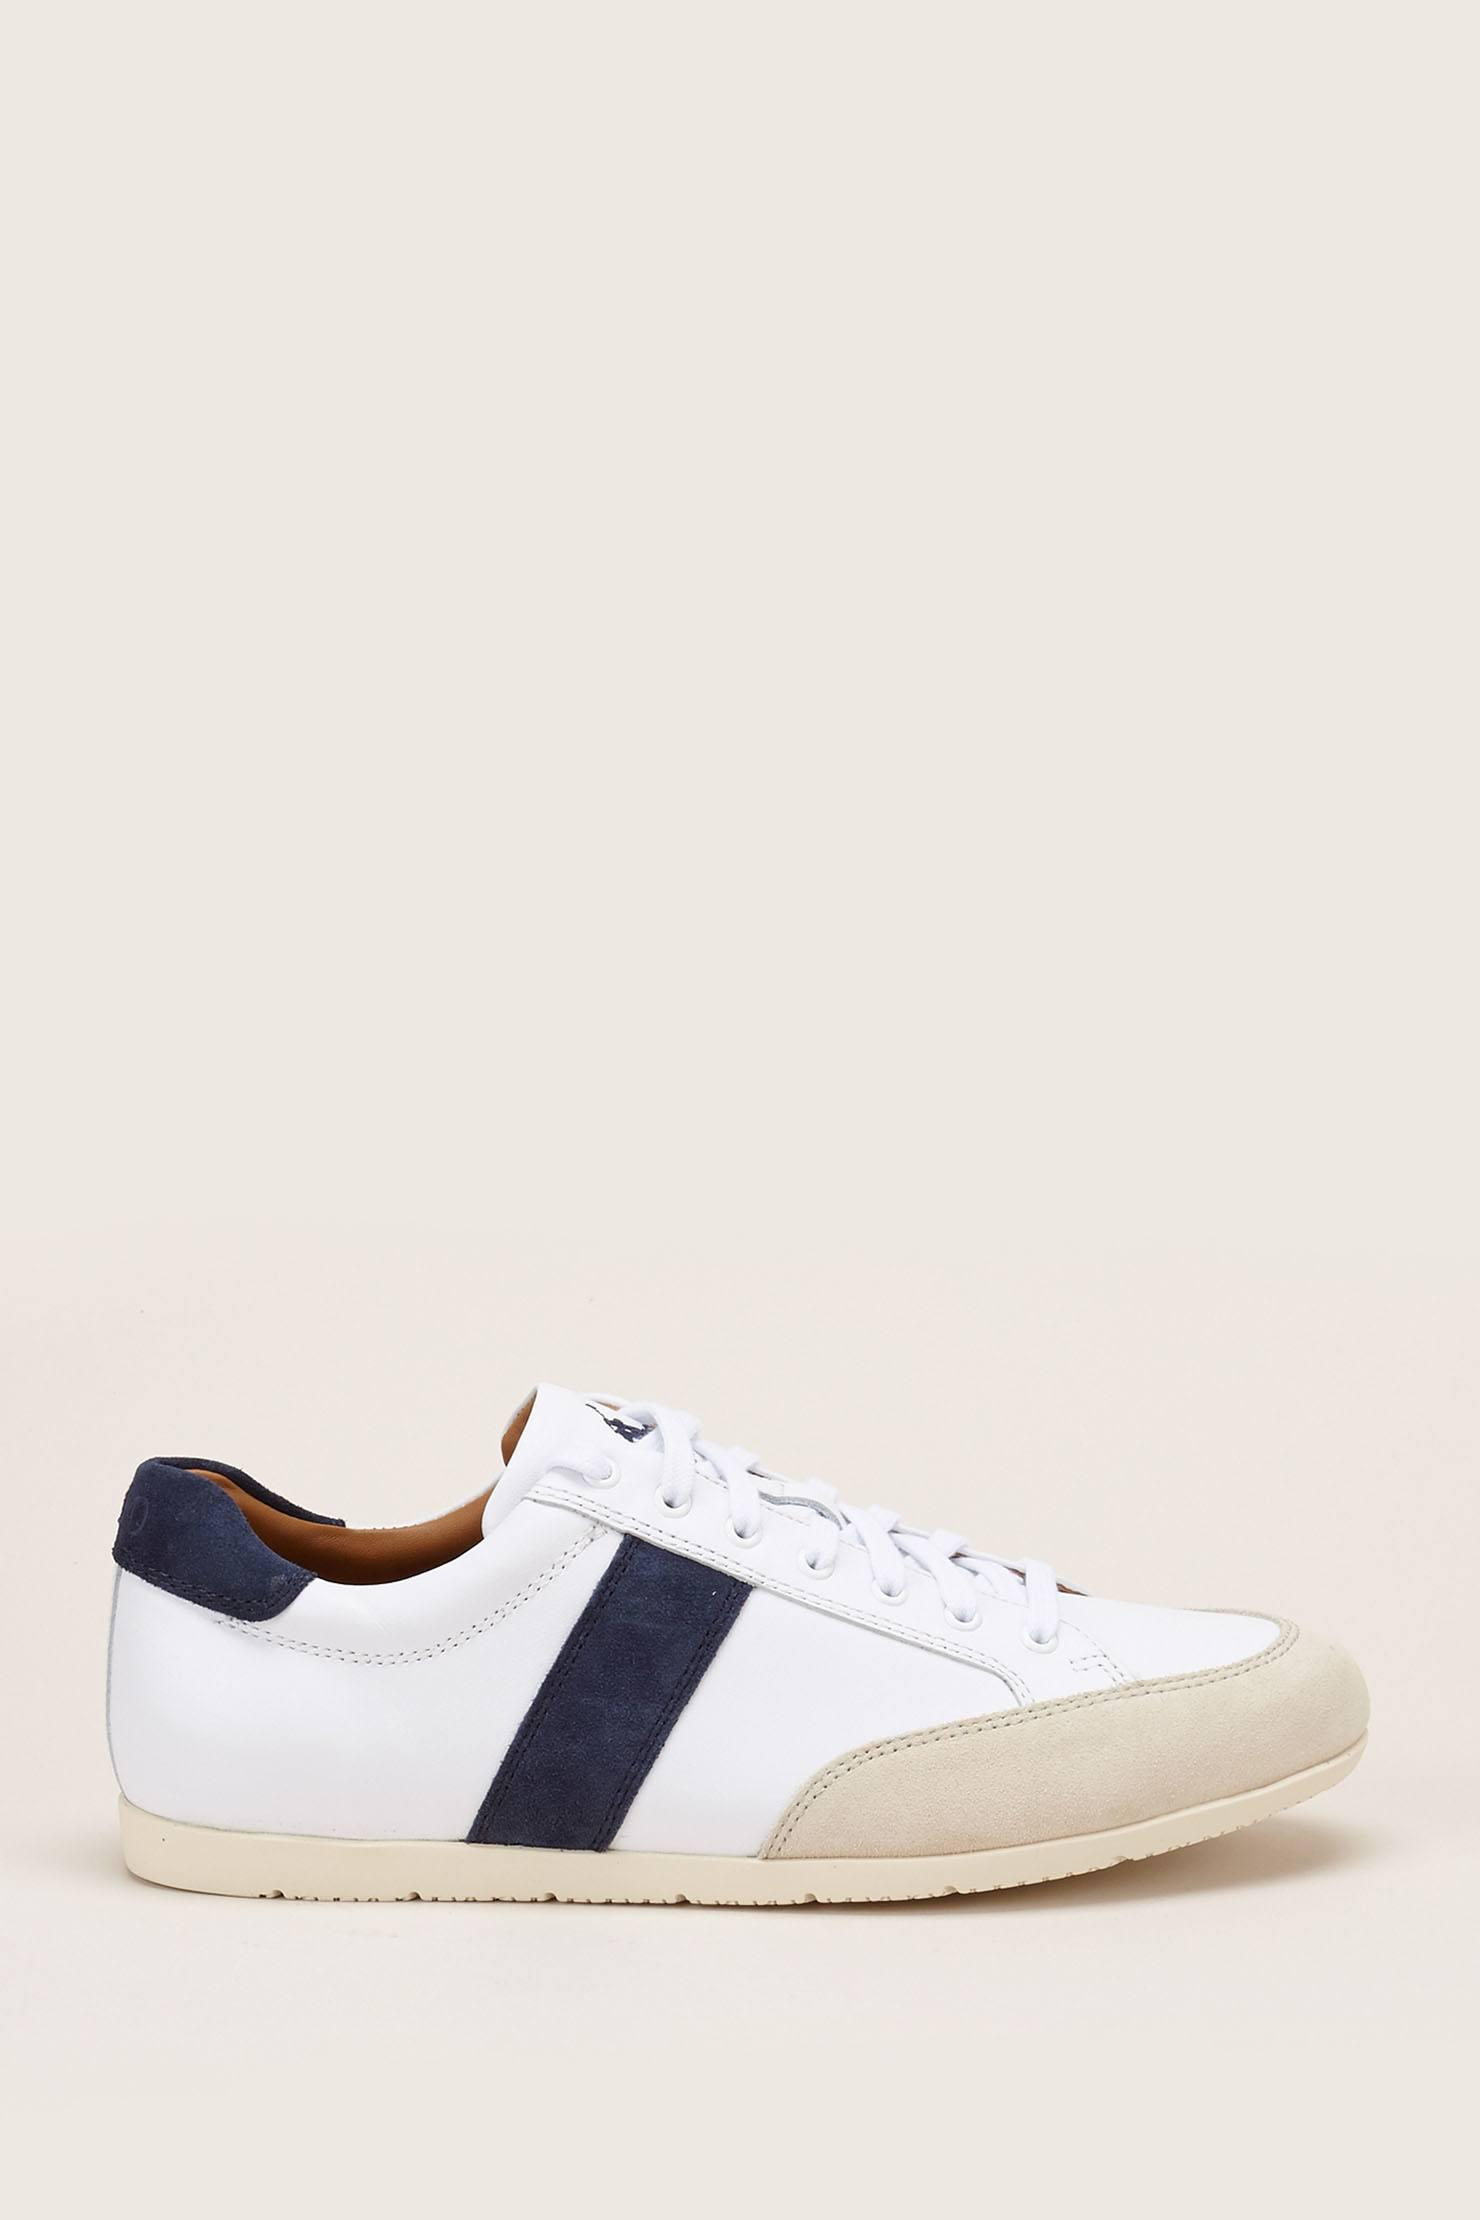 reputable site a678e 05f58 ... Shoe Sale adidas US great deals Lyst - Polo Ralph Lauren Low-top  Trainer in White for Men 0acc8 ...